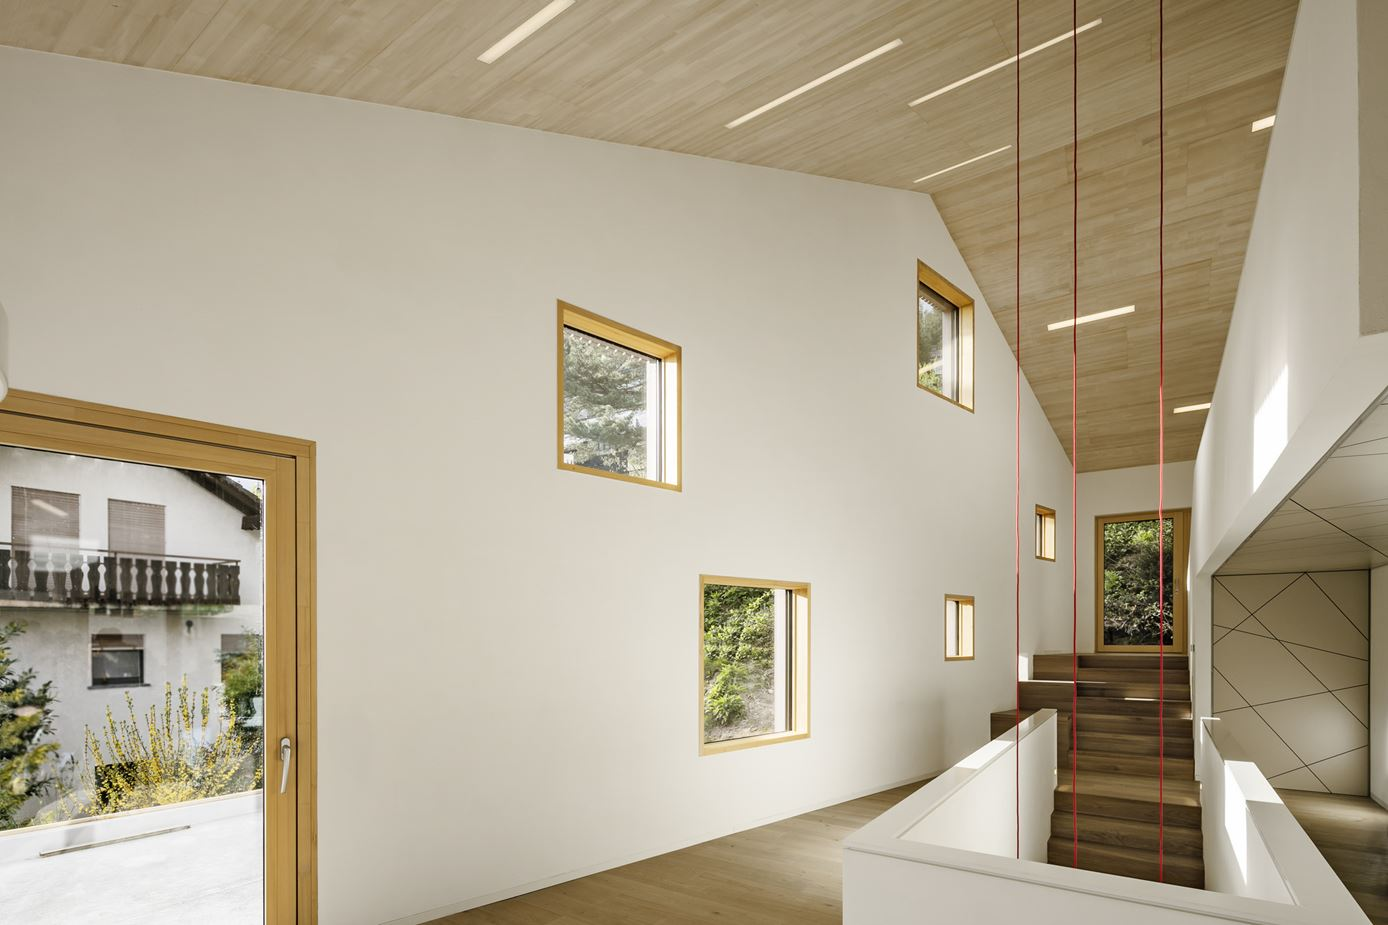 Cloud Cuckoo House in Münstertal, Black Forest, Germany by UberRaum Architects